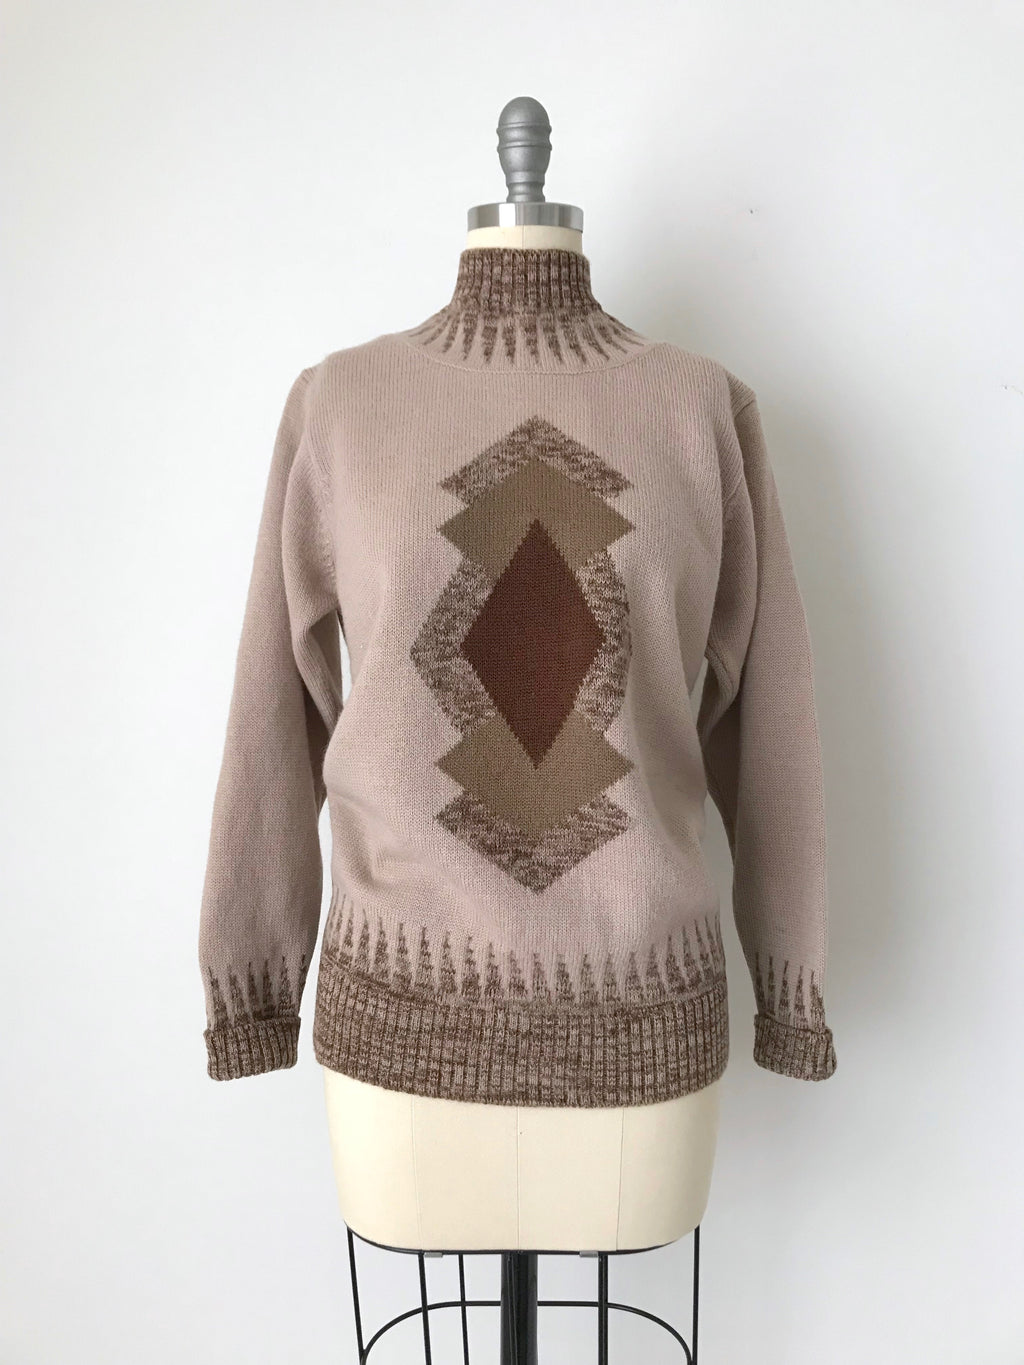 Women's Vintage Tan Wool Pullover Sweater by Yadie | Size Small | Canary Club Vintage